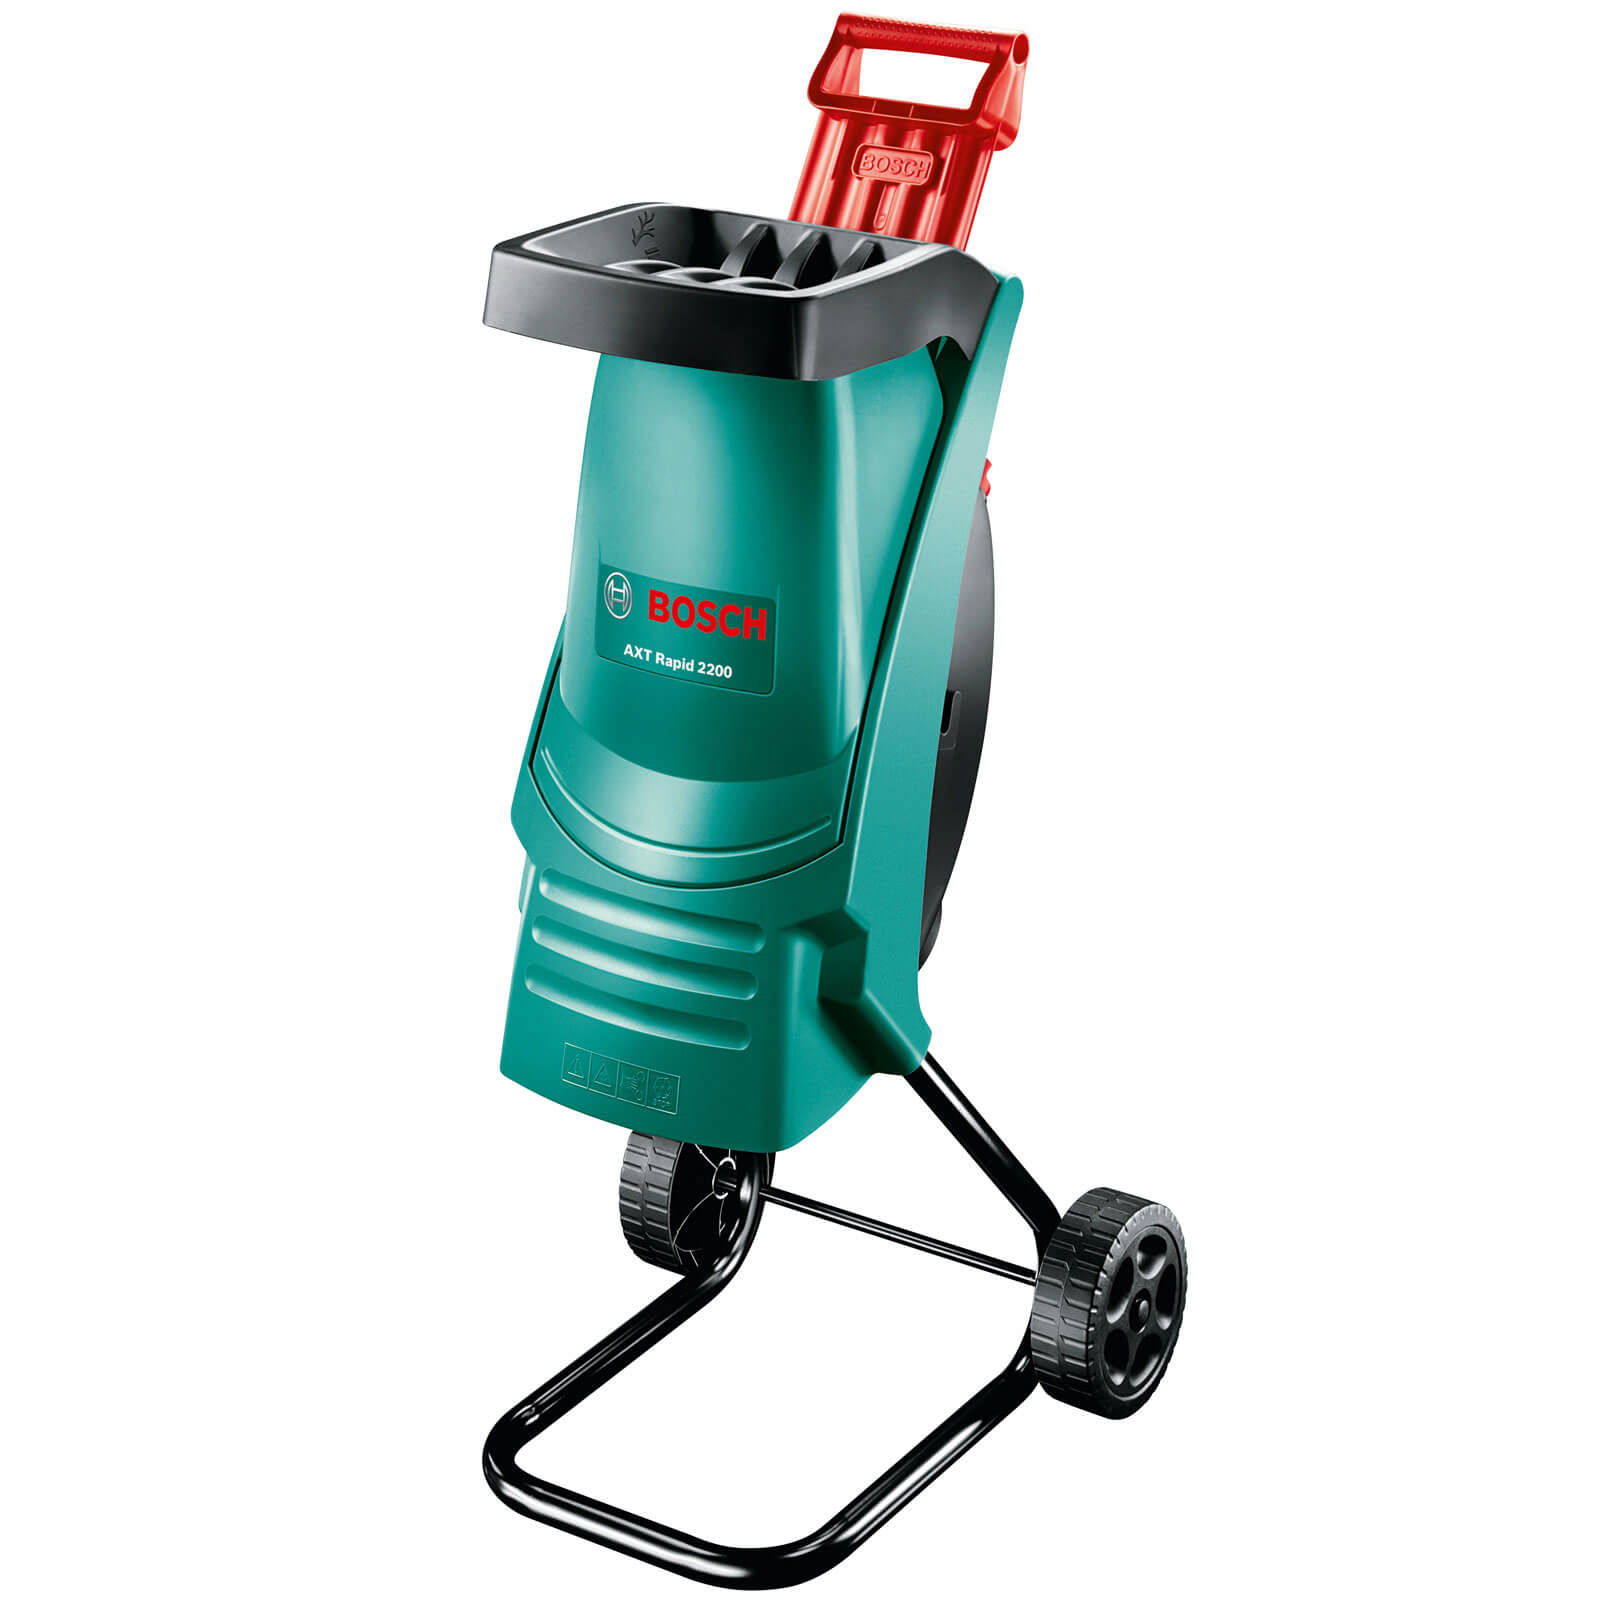 Bosch Axt Rapid 2200 Garden Shredder Max 40mm Capacity 2200w 240v Plus Free Spare Blade